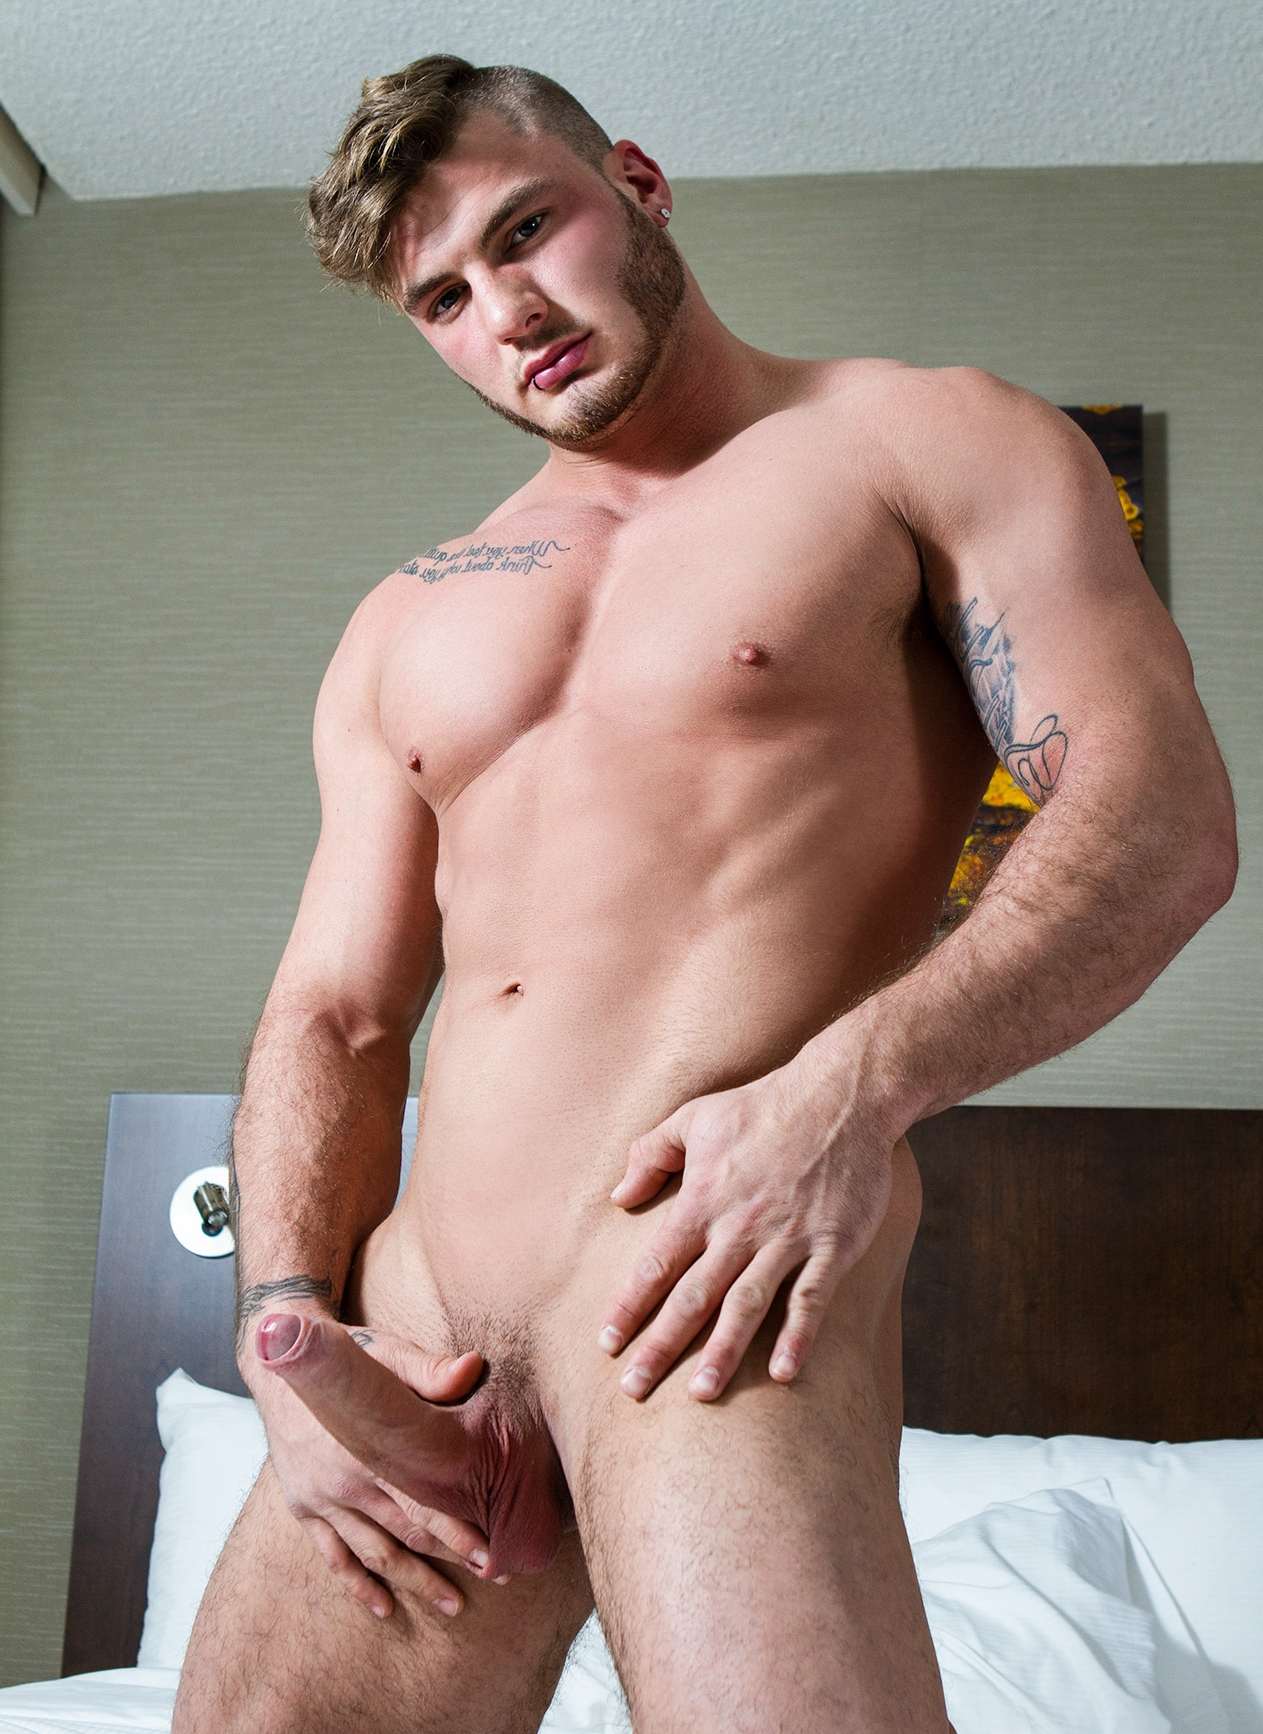 William Seed gay hot daddy dude men porn